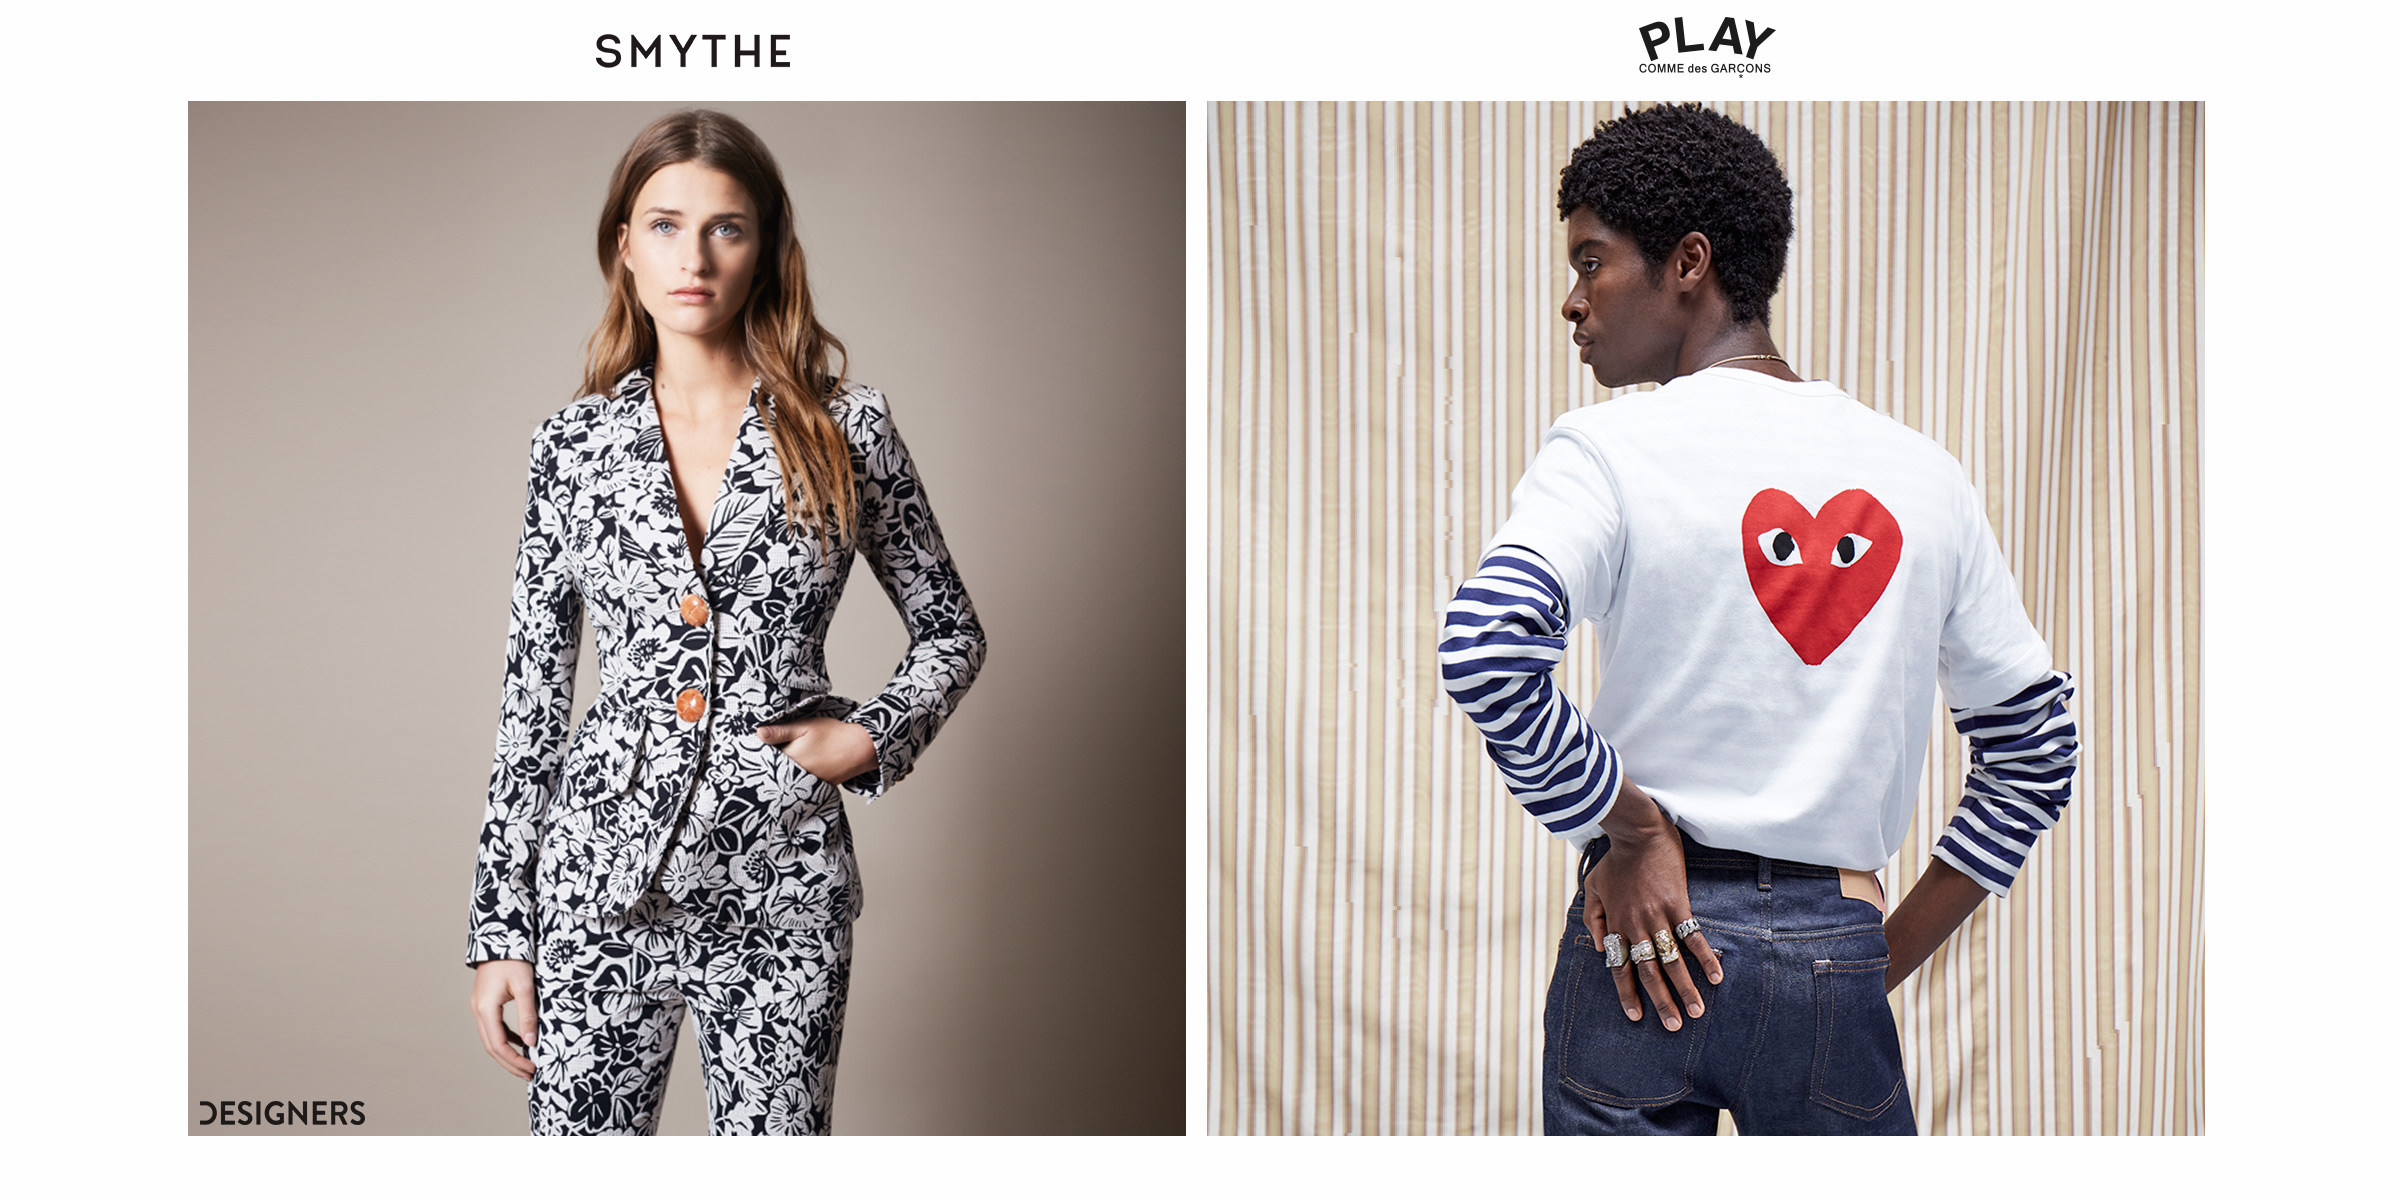 00D-P19-MS-DESIGNERS-MIXTE-Smythe & Play.psd